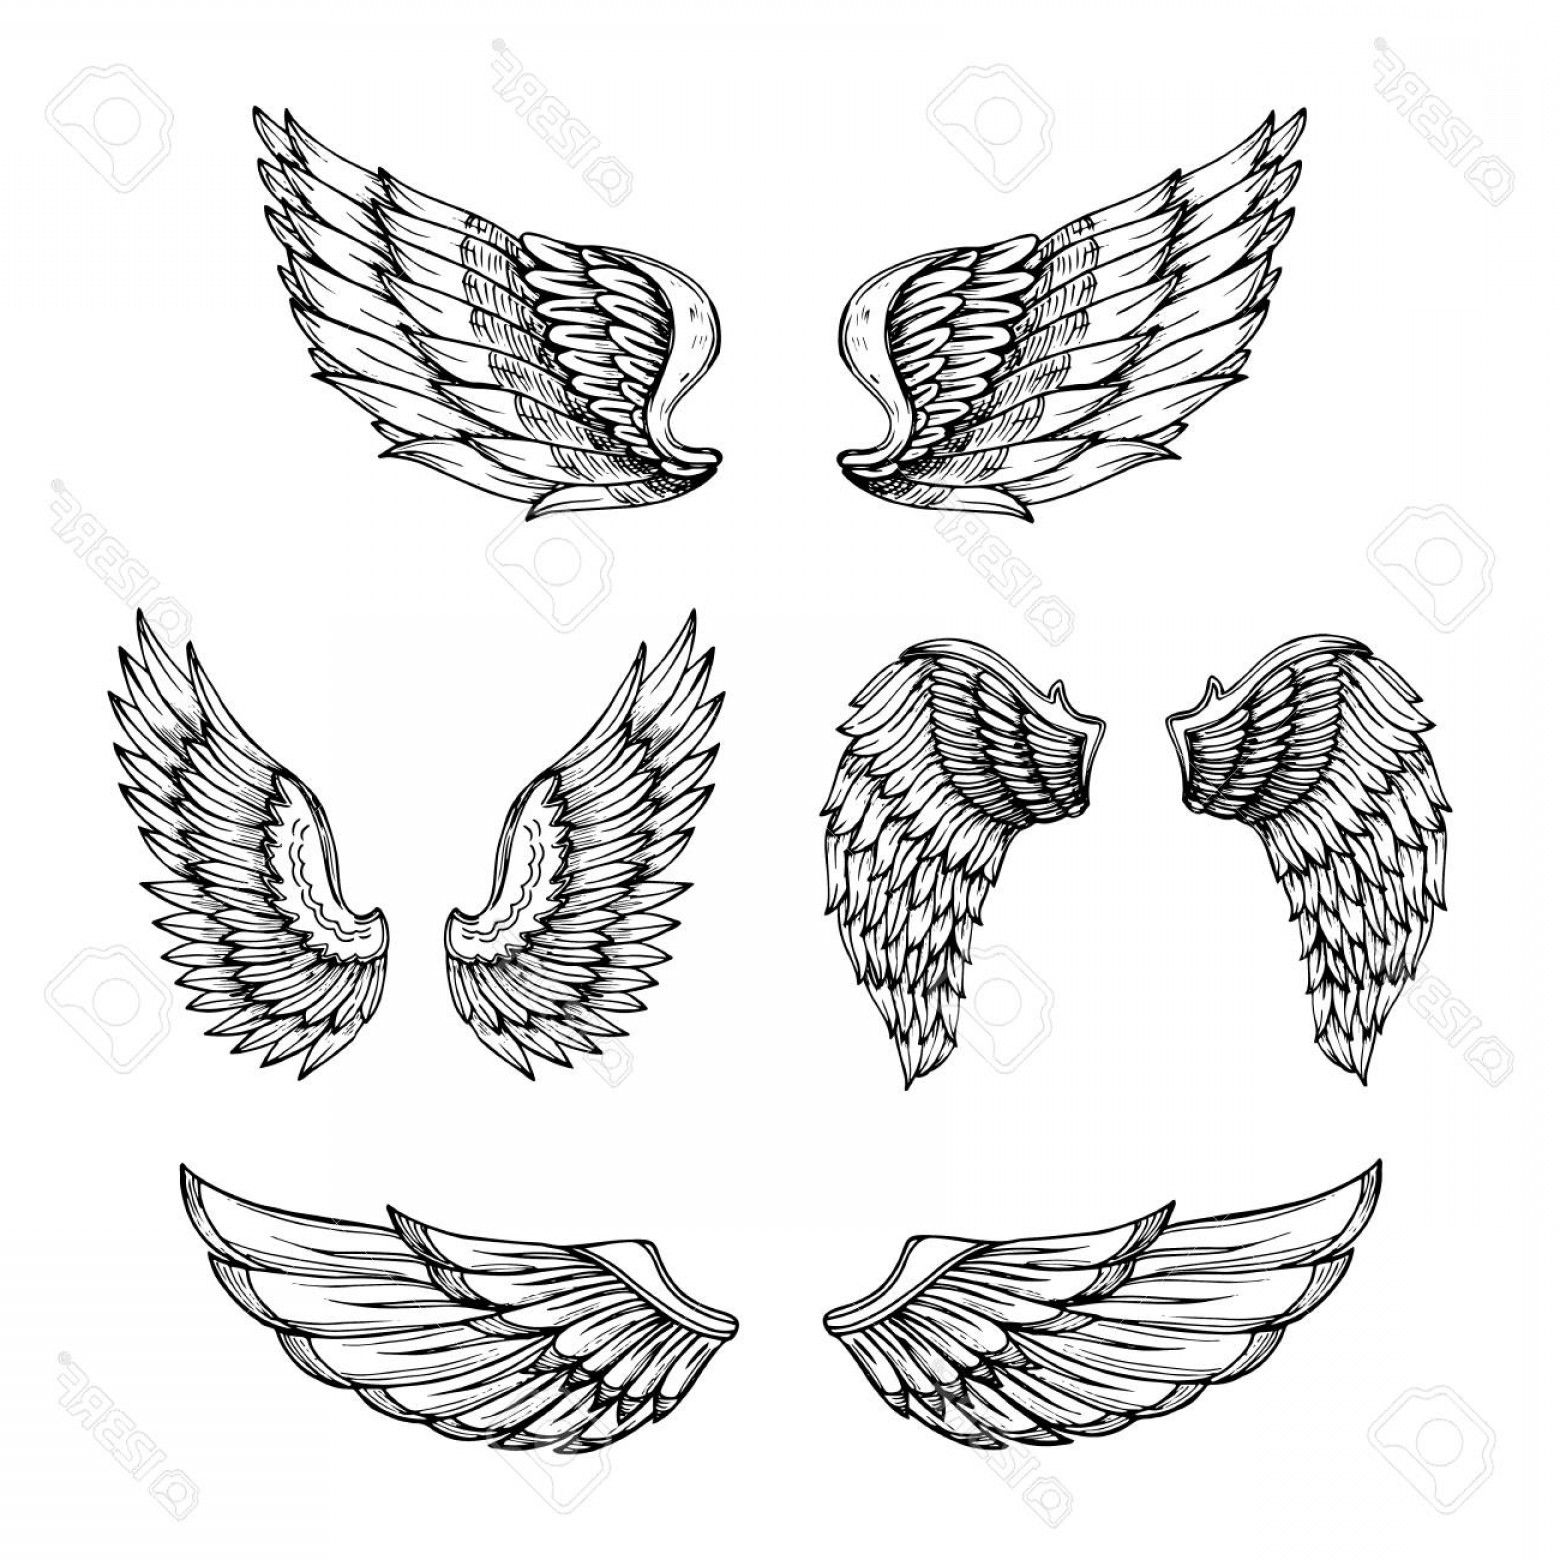 Angel Wings Tattoo Tribal Vector: Photostock Vector Hand Drawn Wing Sketch Angel Wings With Feathers Vector Tattoo Design Isolated Angel Wing Tattoo Bir